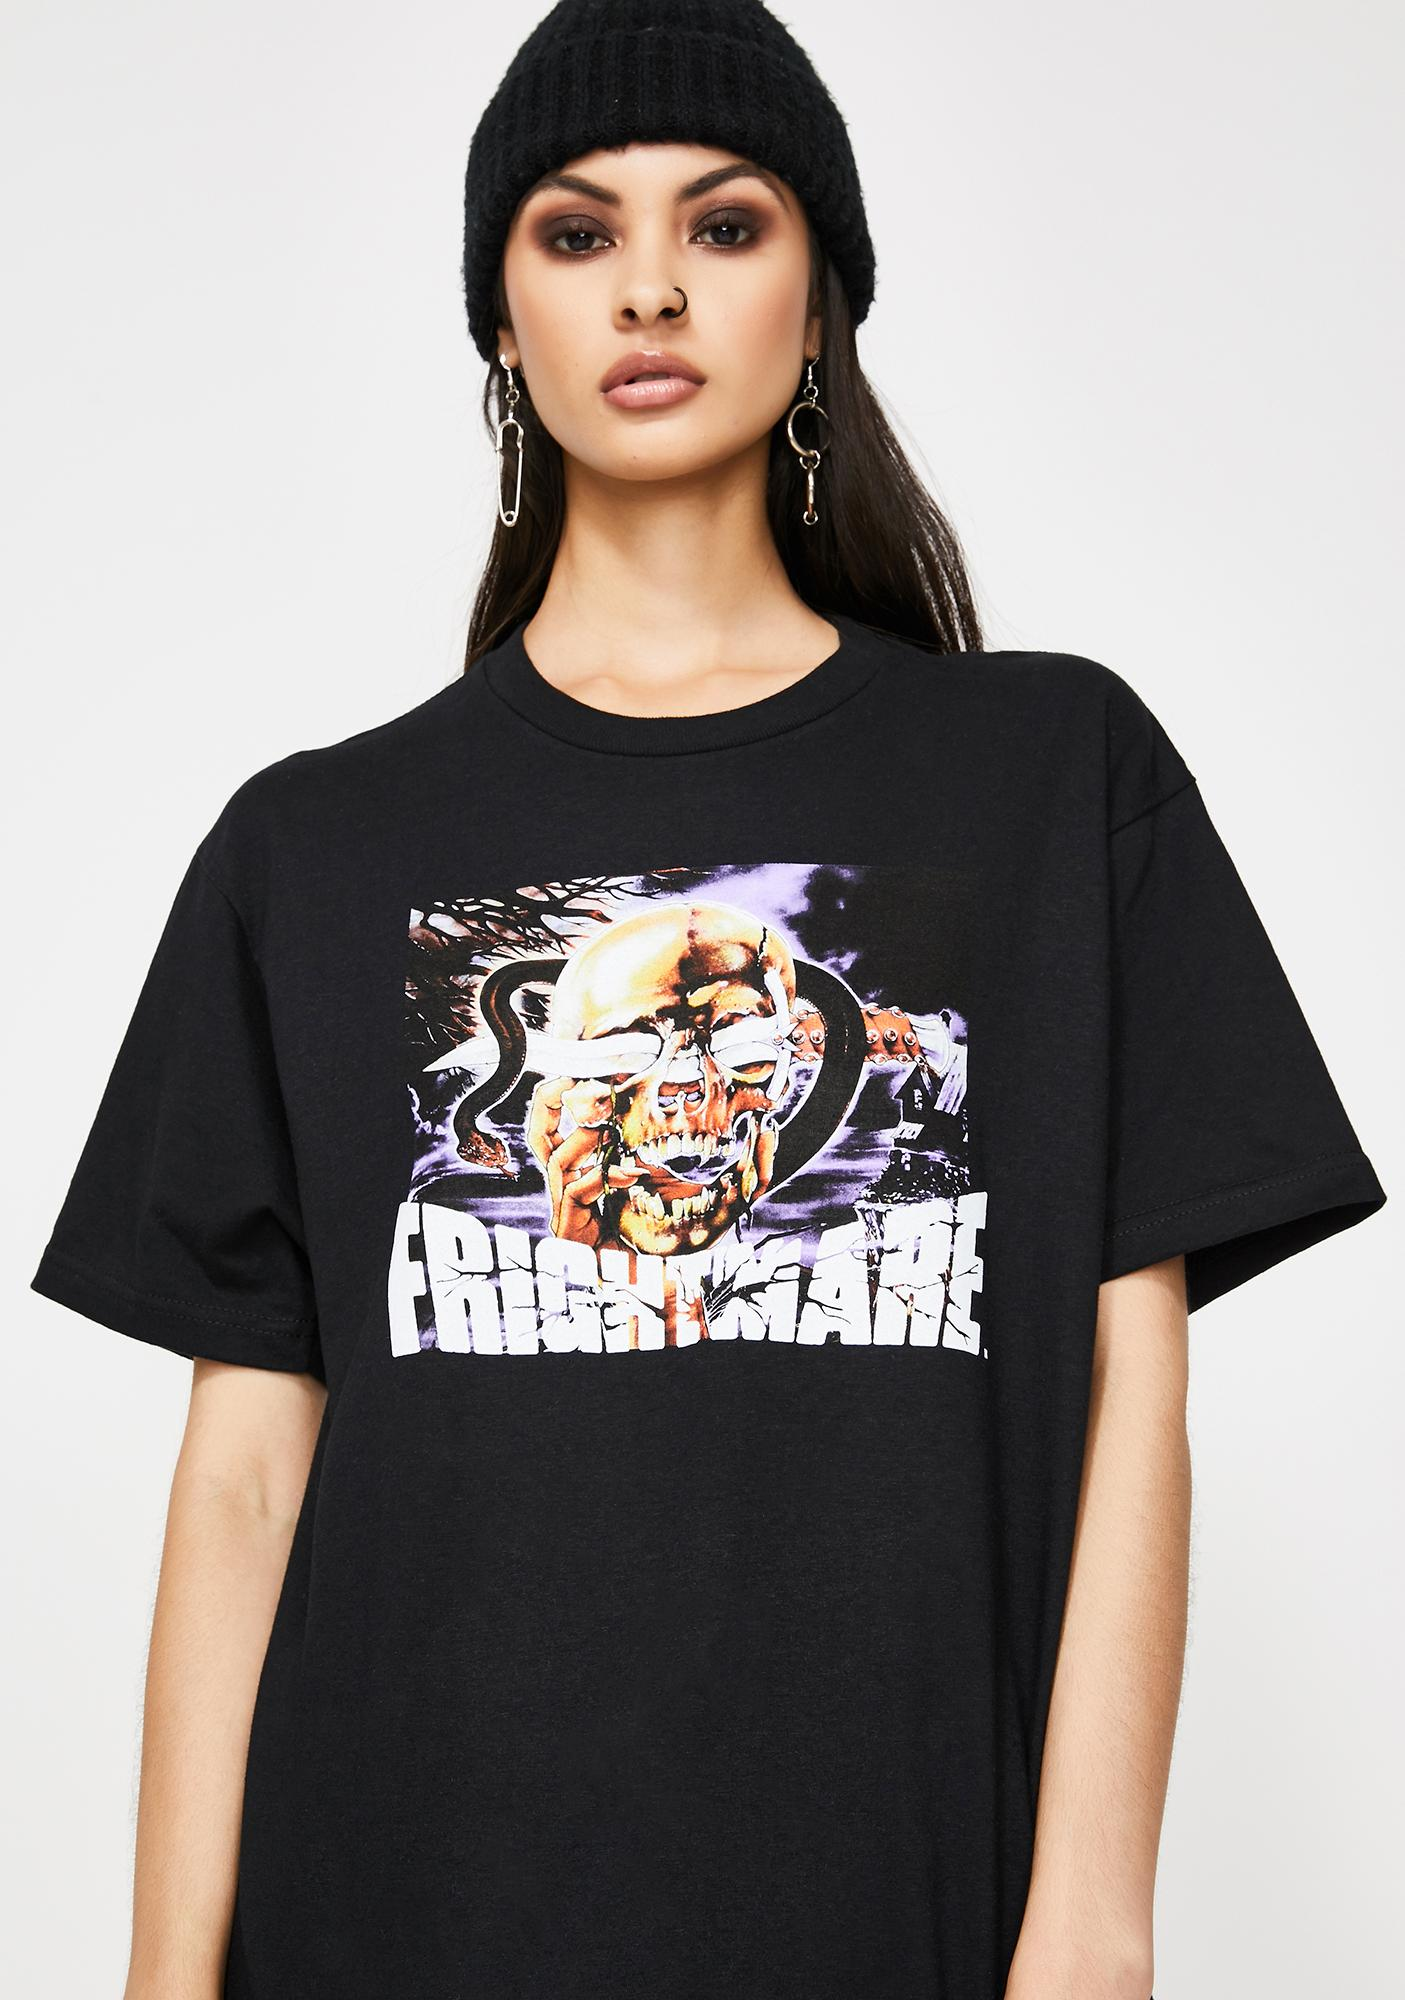 BOW3RY Frightmare Graphic Tee